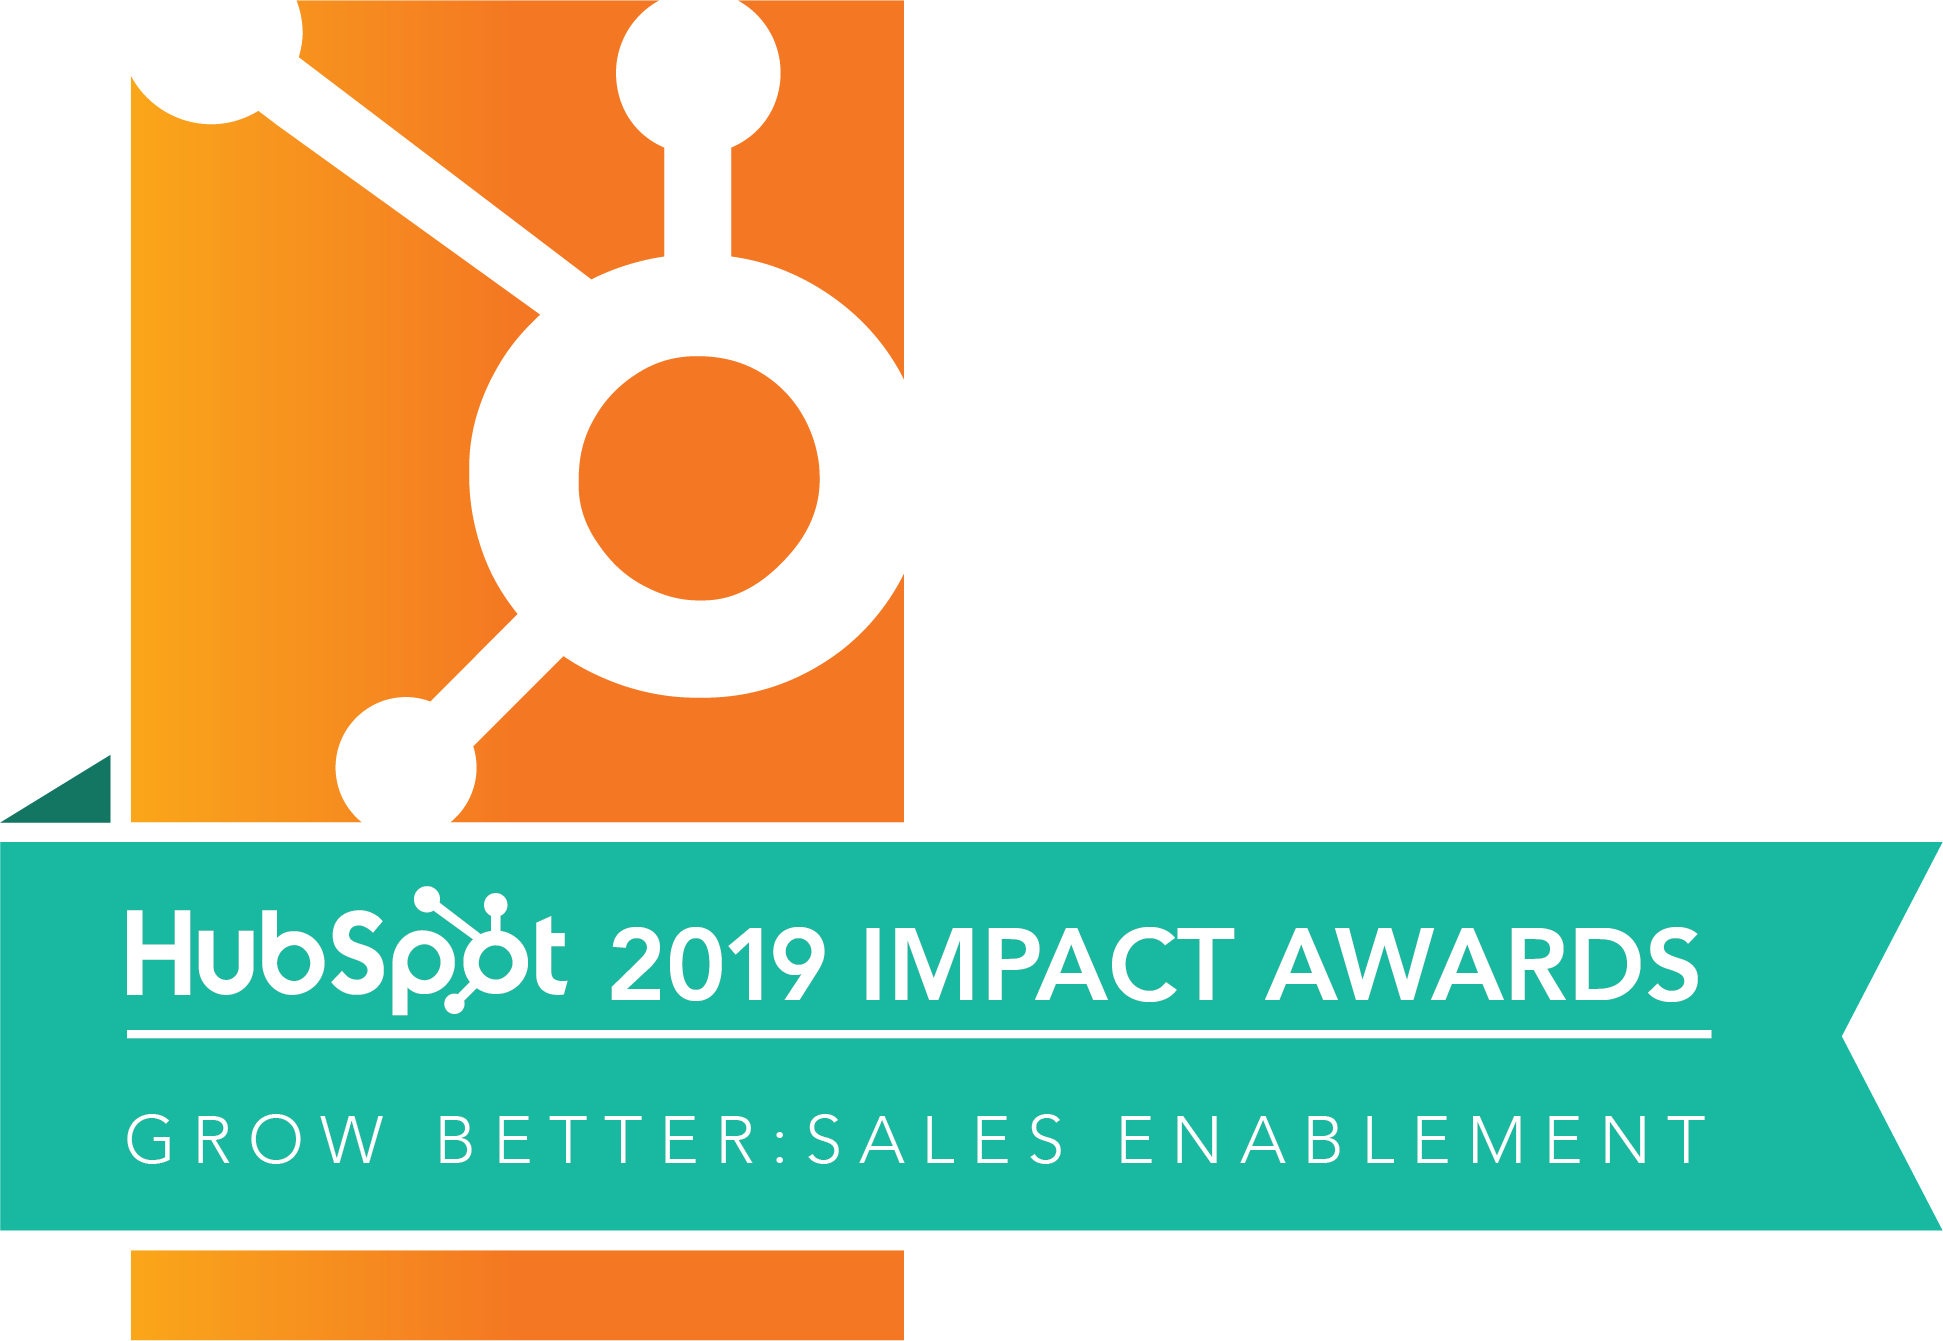 Hubspot Impact Awards 2019 Sales Enablement